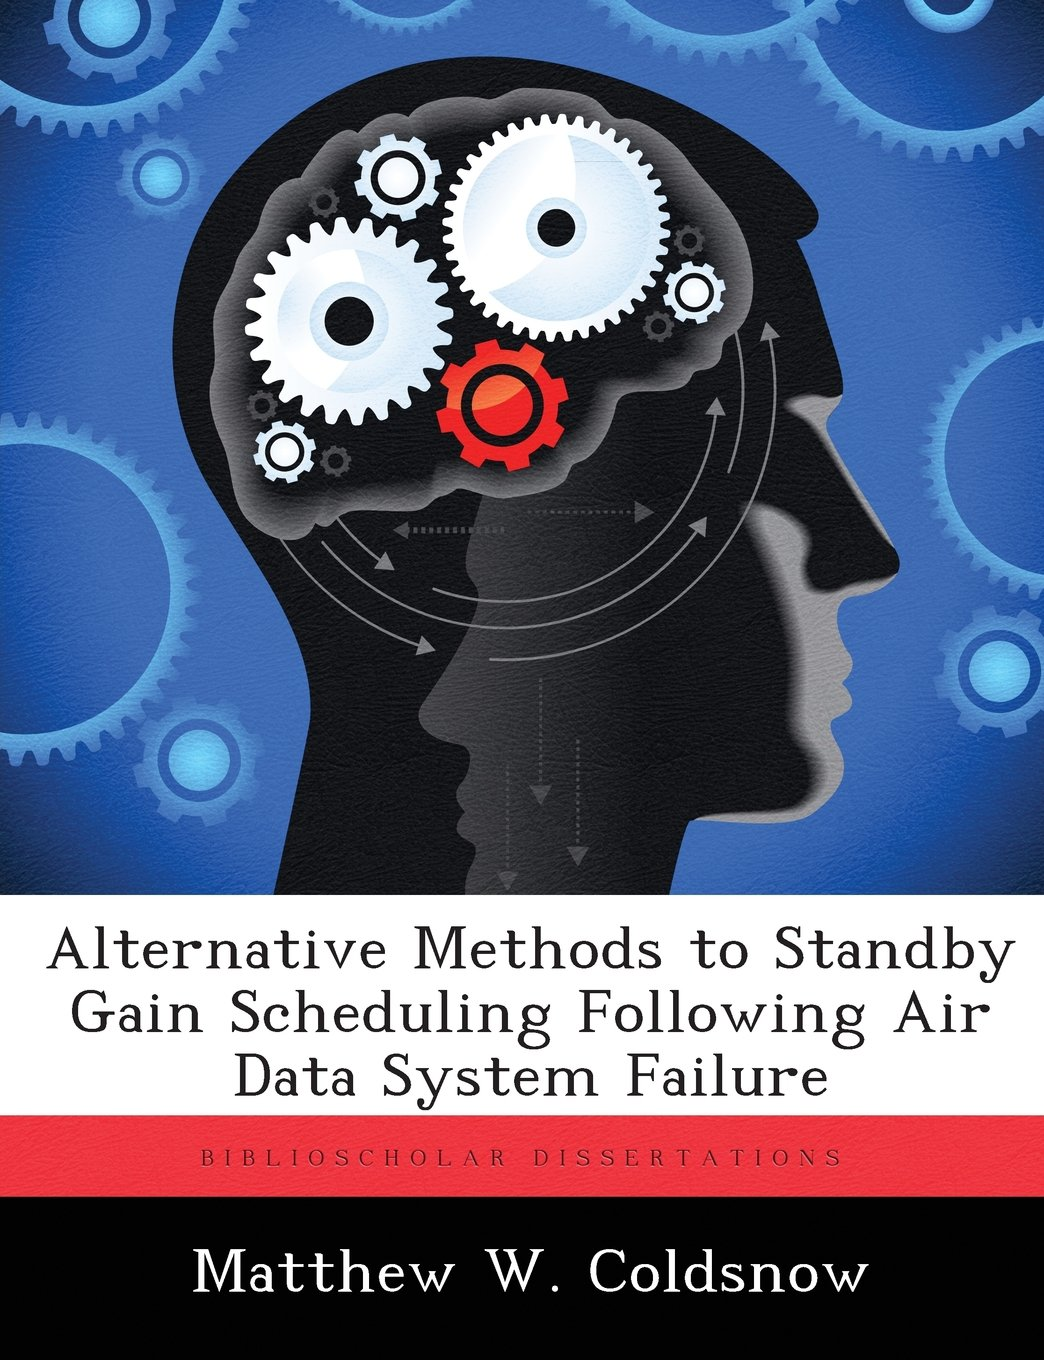 Download Alternative Methods to Standby Gain Scheduling Following Air Data System Failure PDF